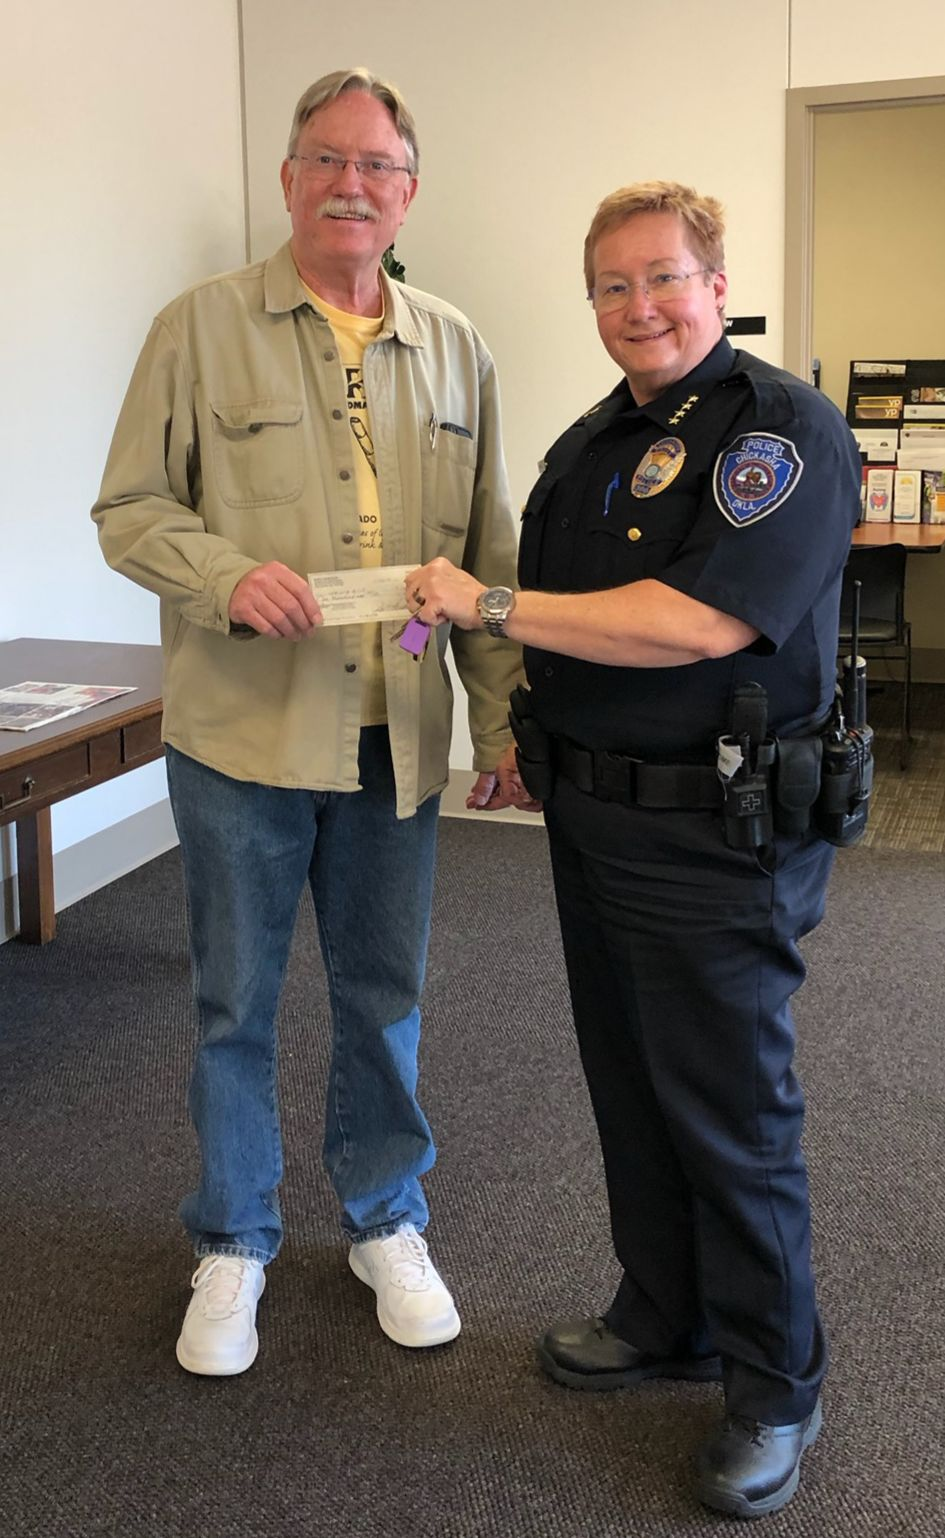 Herndon donates to Shop with a Cop